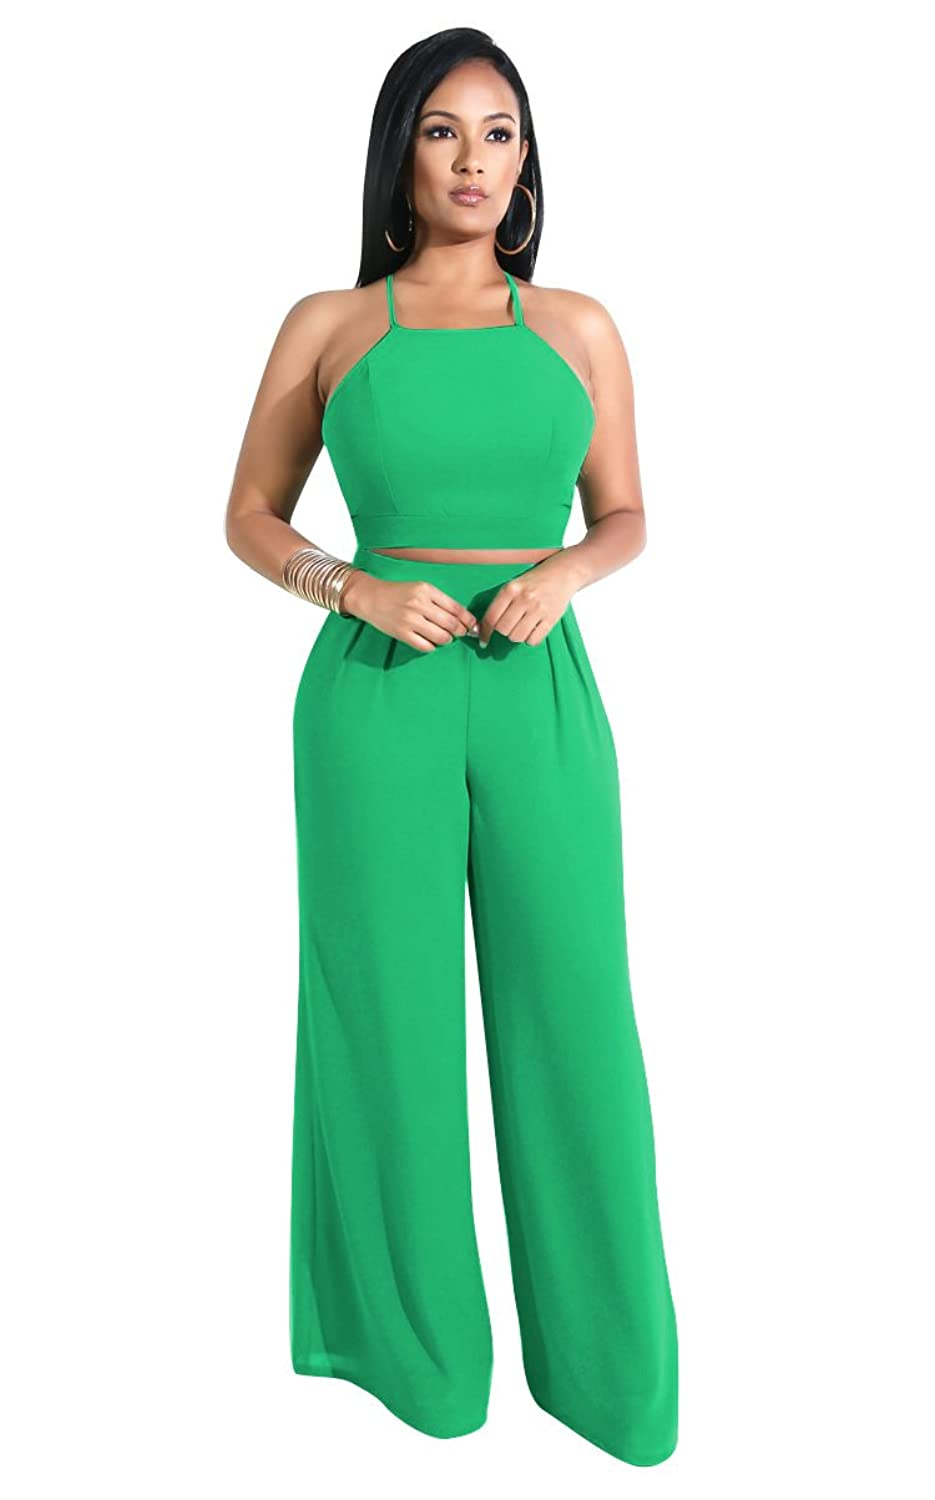 0eeaa207108 2 Piece Outfits for Women Spaghetti Strap Solid Crop Top Wide Leg Long  Pants Set